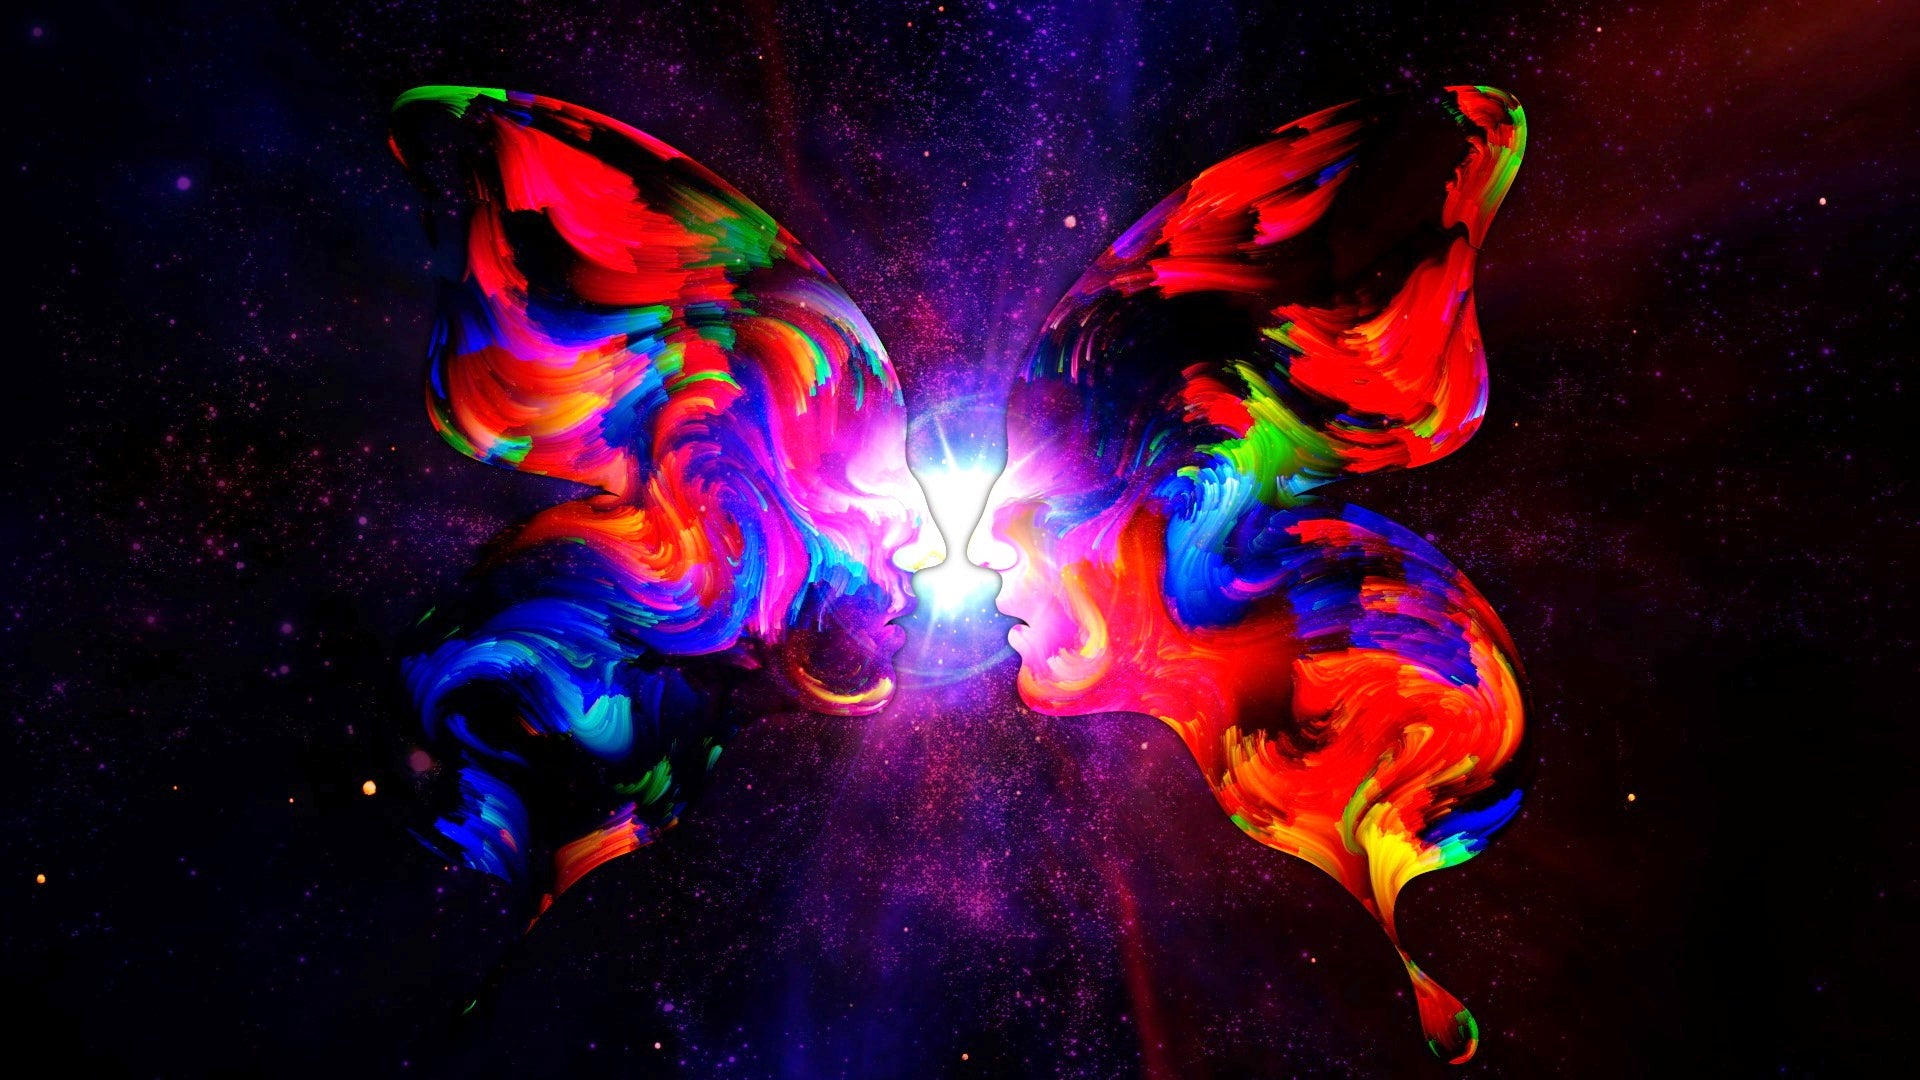 LOVE Music 💫 Twin Flames⎪Twin Souls 🌈 Divine Solfeggio Music